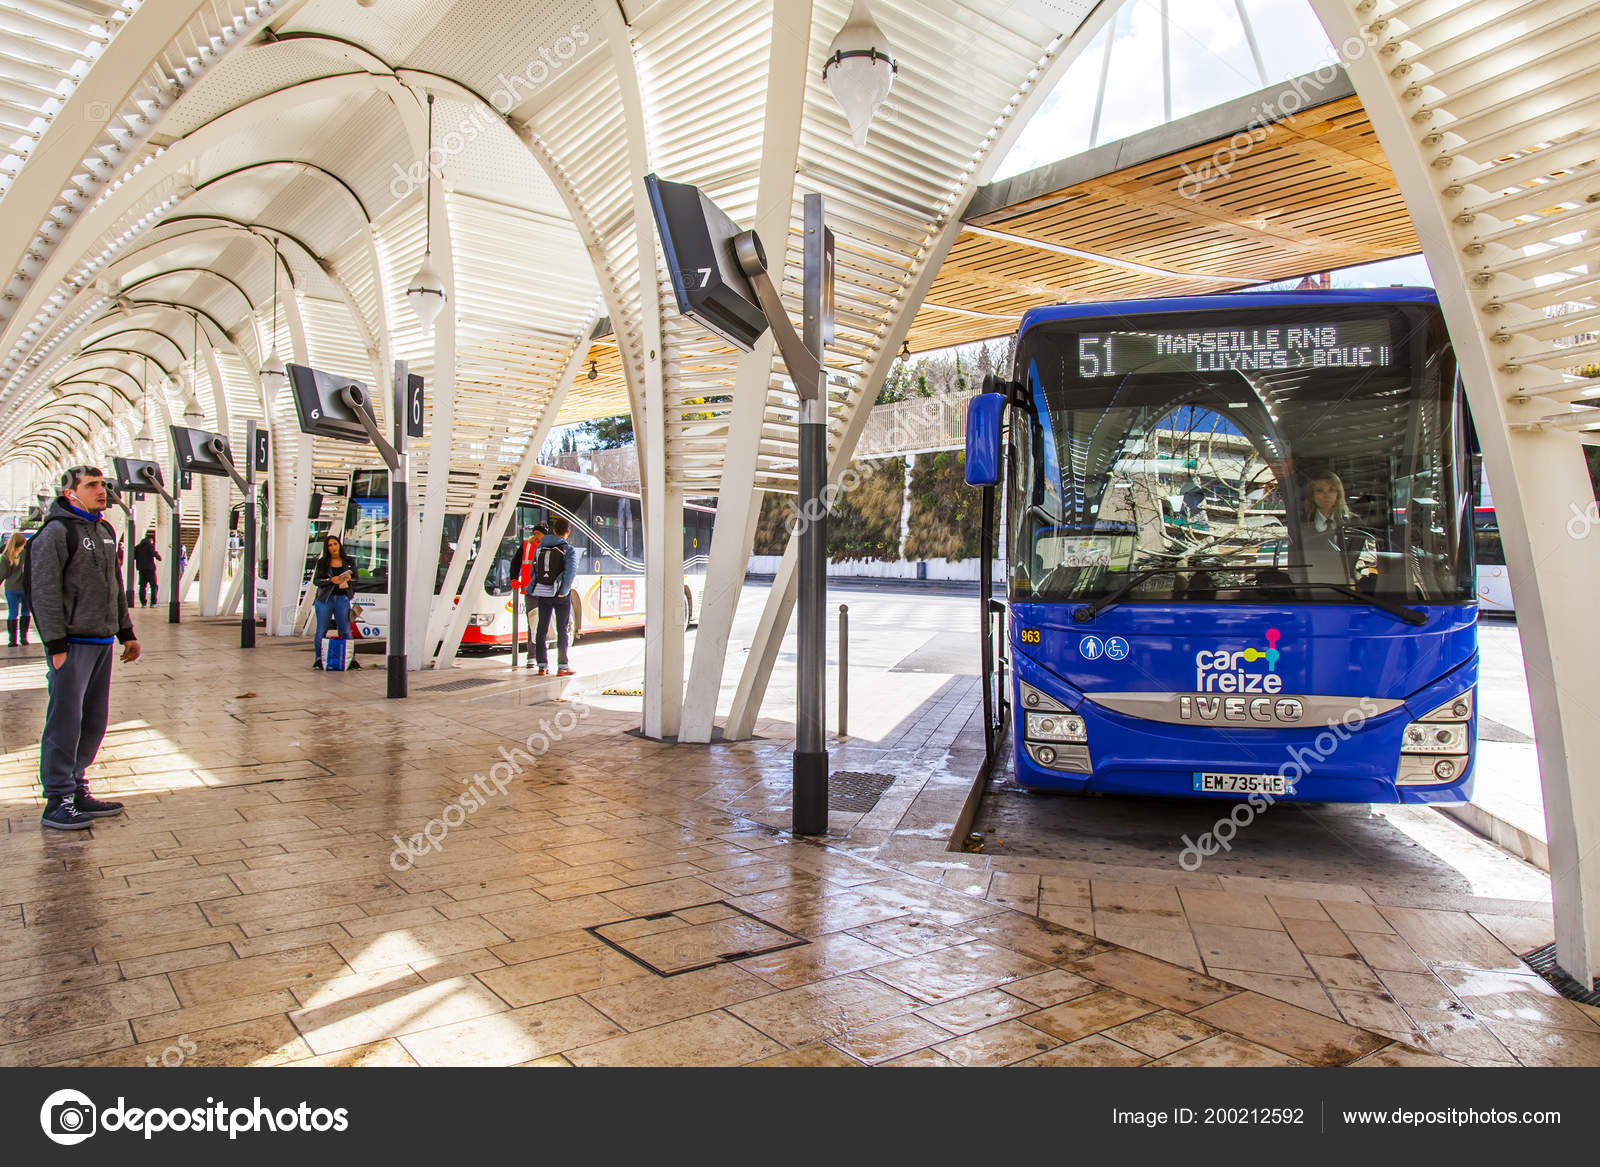 Aix provence france march 2018 buses wait passengers city for Bus salon de provence aix en provence